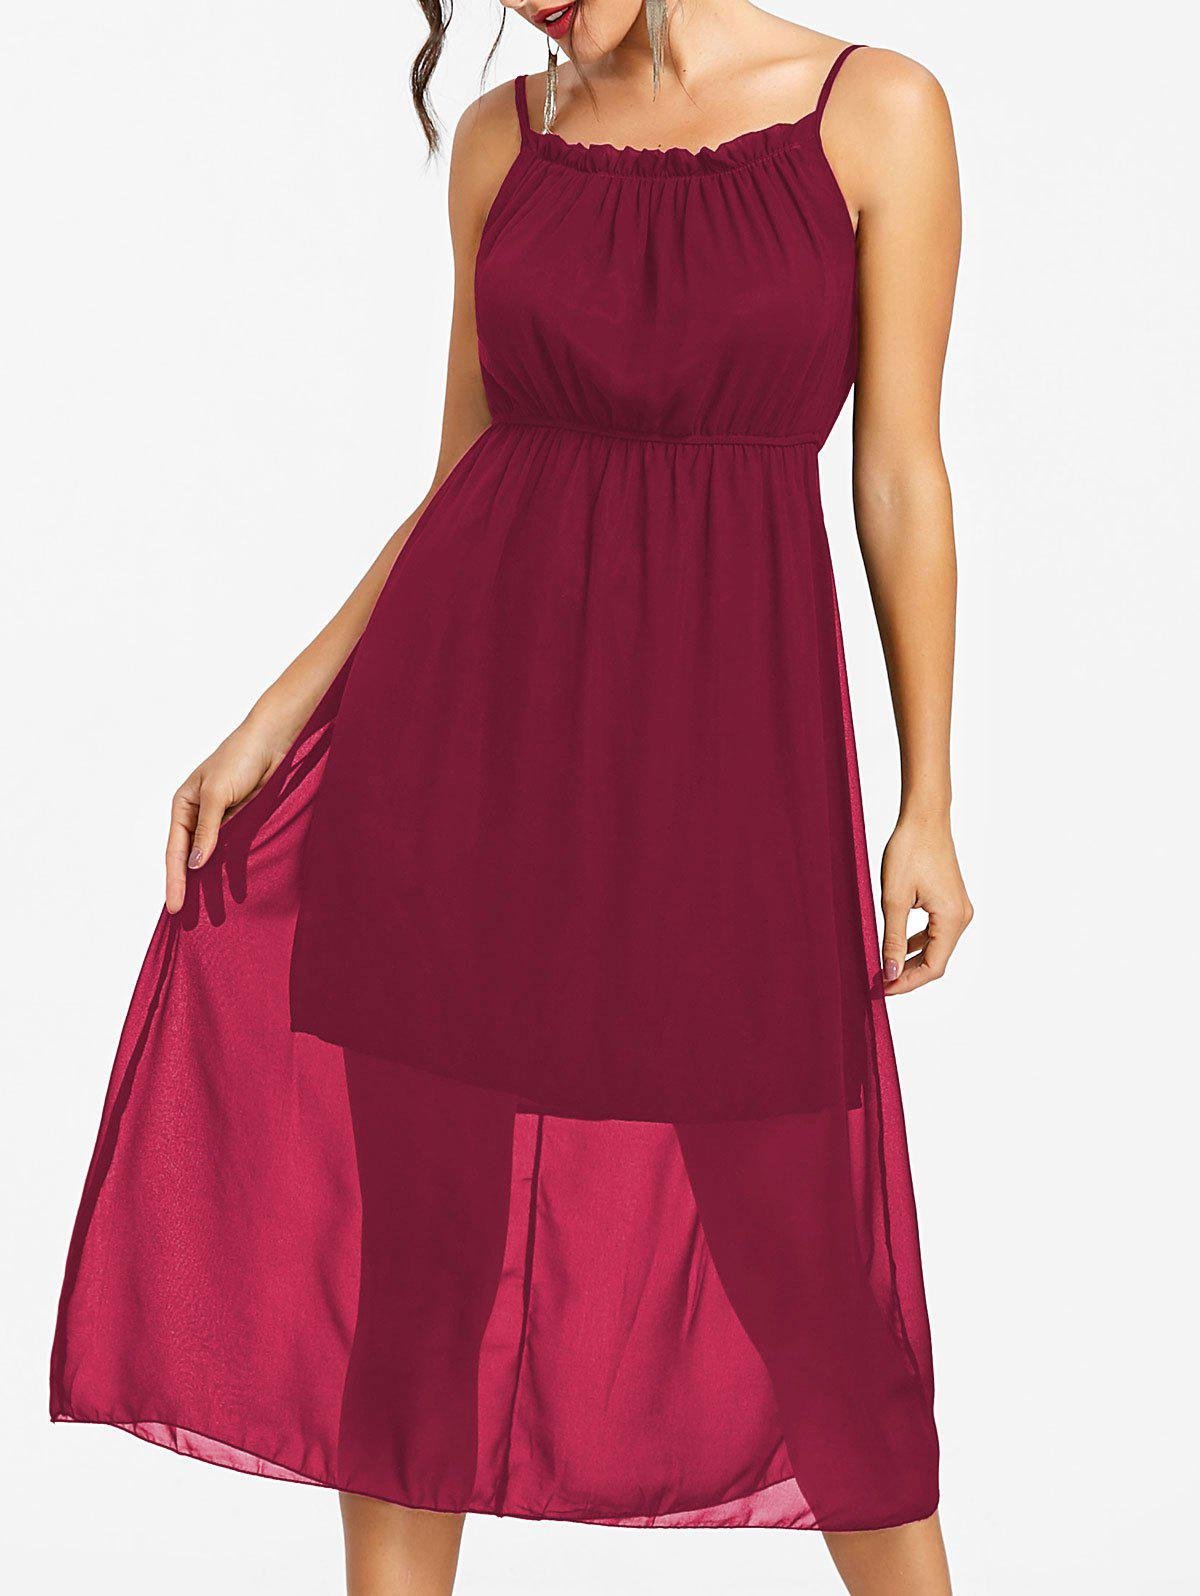 High Waisted Spaghetti Strap Chiffon Dress - RED WINE 2XL